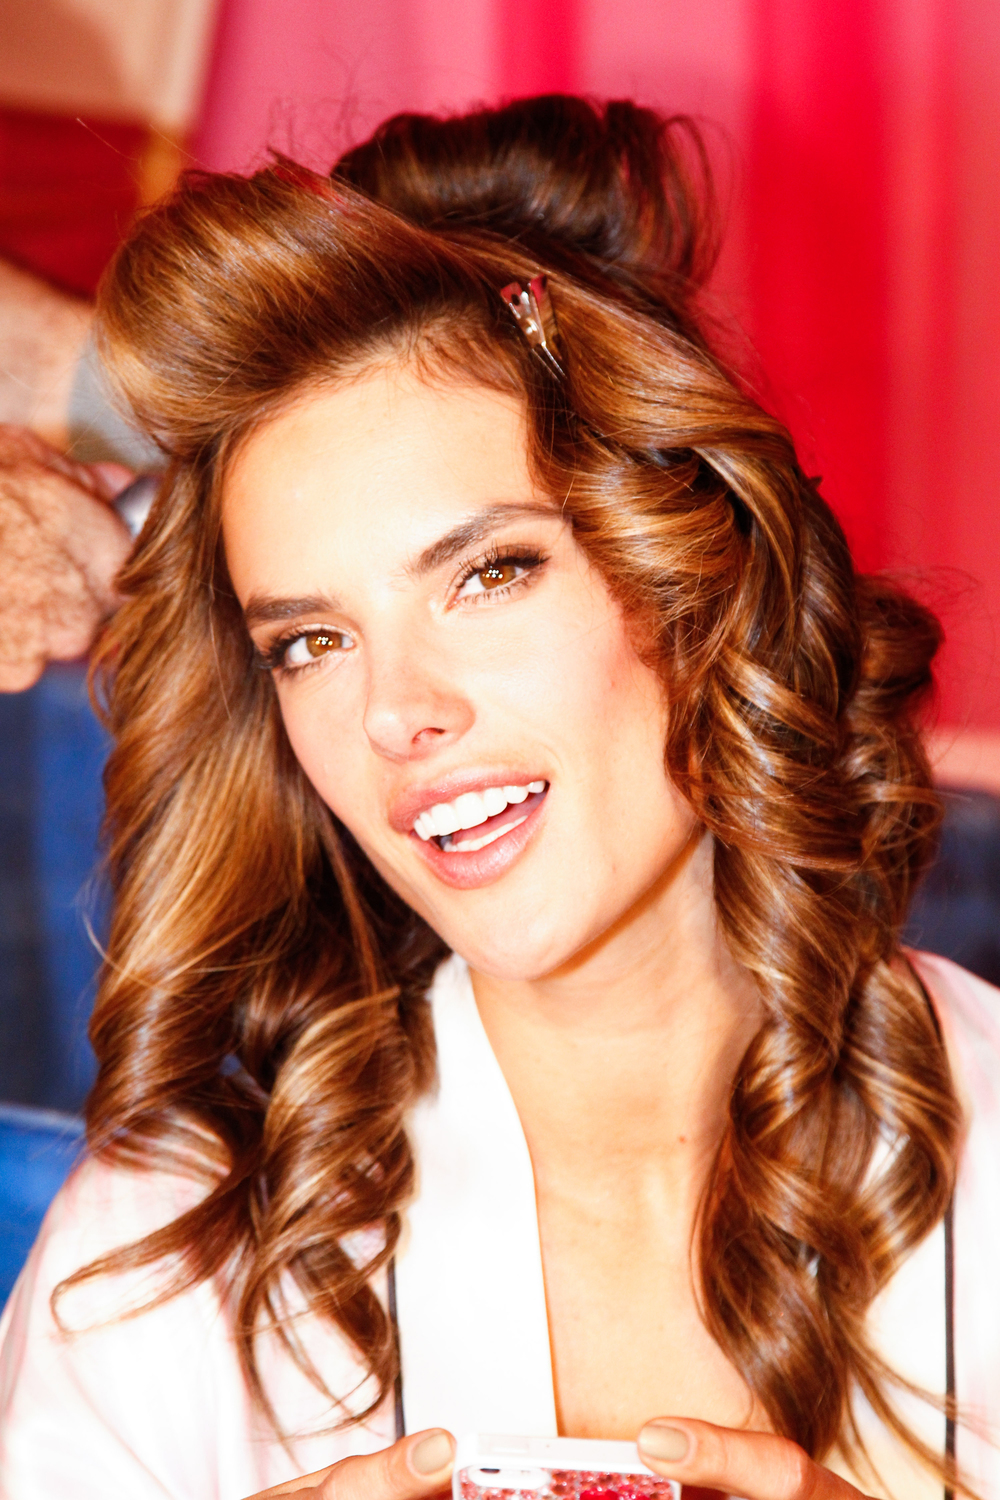 vic006com-fashion-show-media-kit-2013-alessandra-hair-backstage-victorias-secret-hi-res.jpg